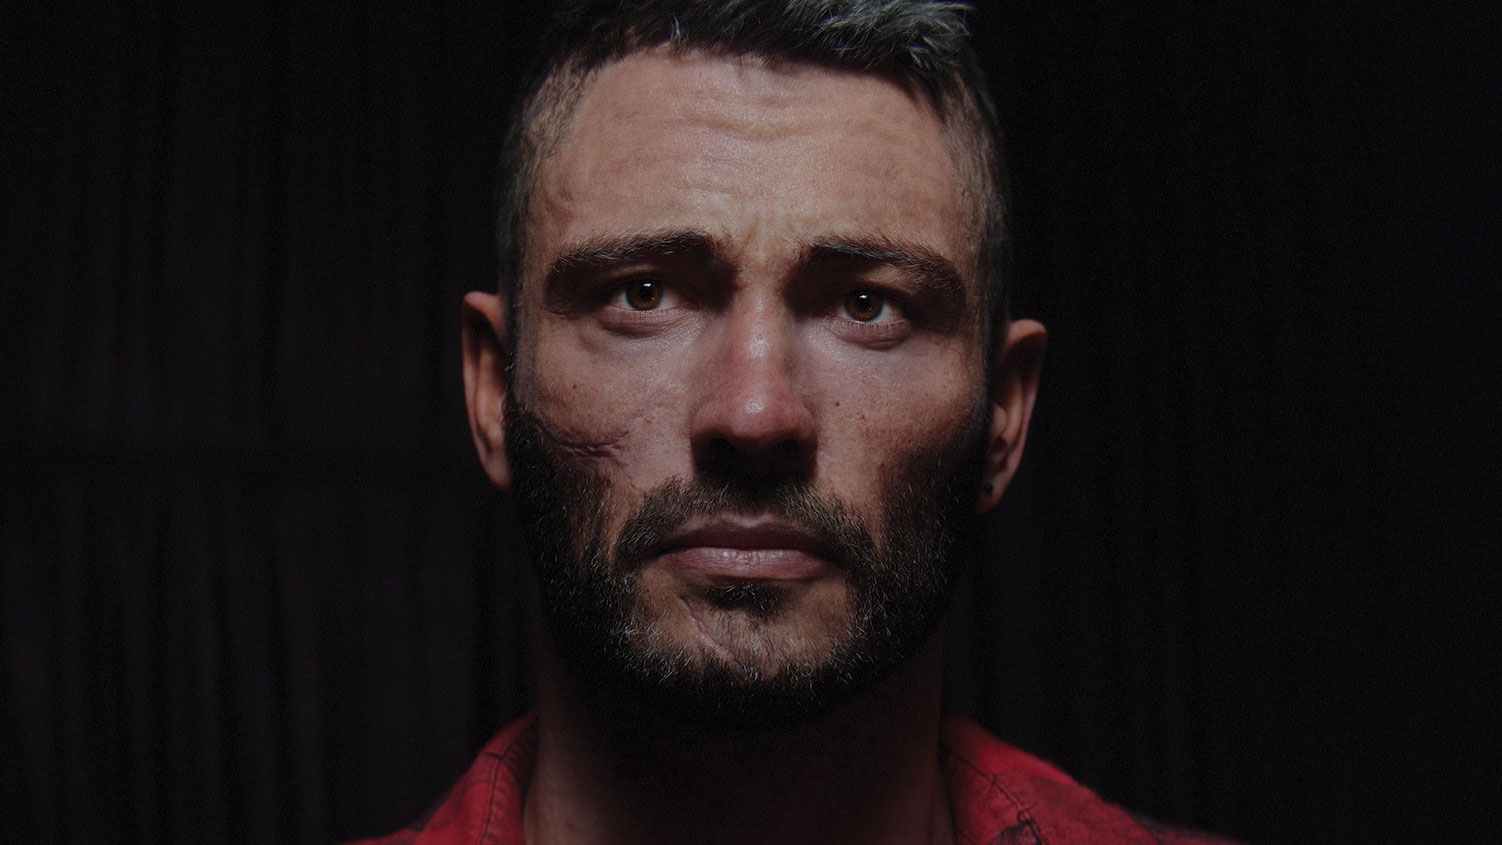 Realistic 3D portrait of a man by István Vastag